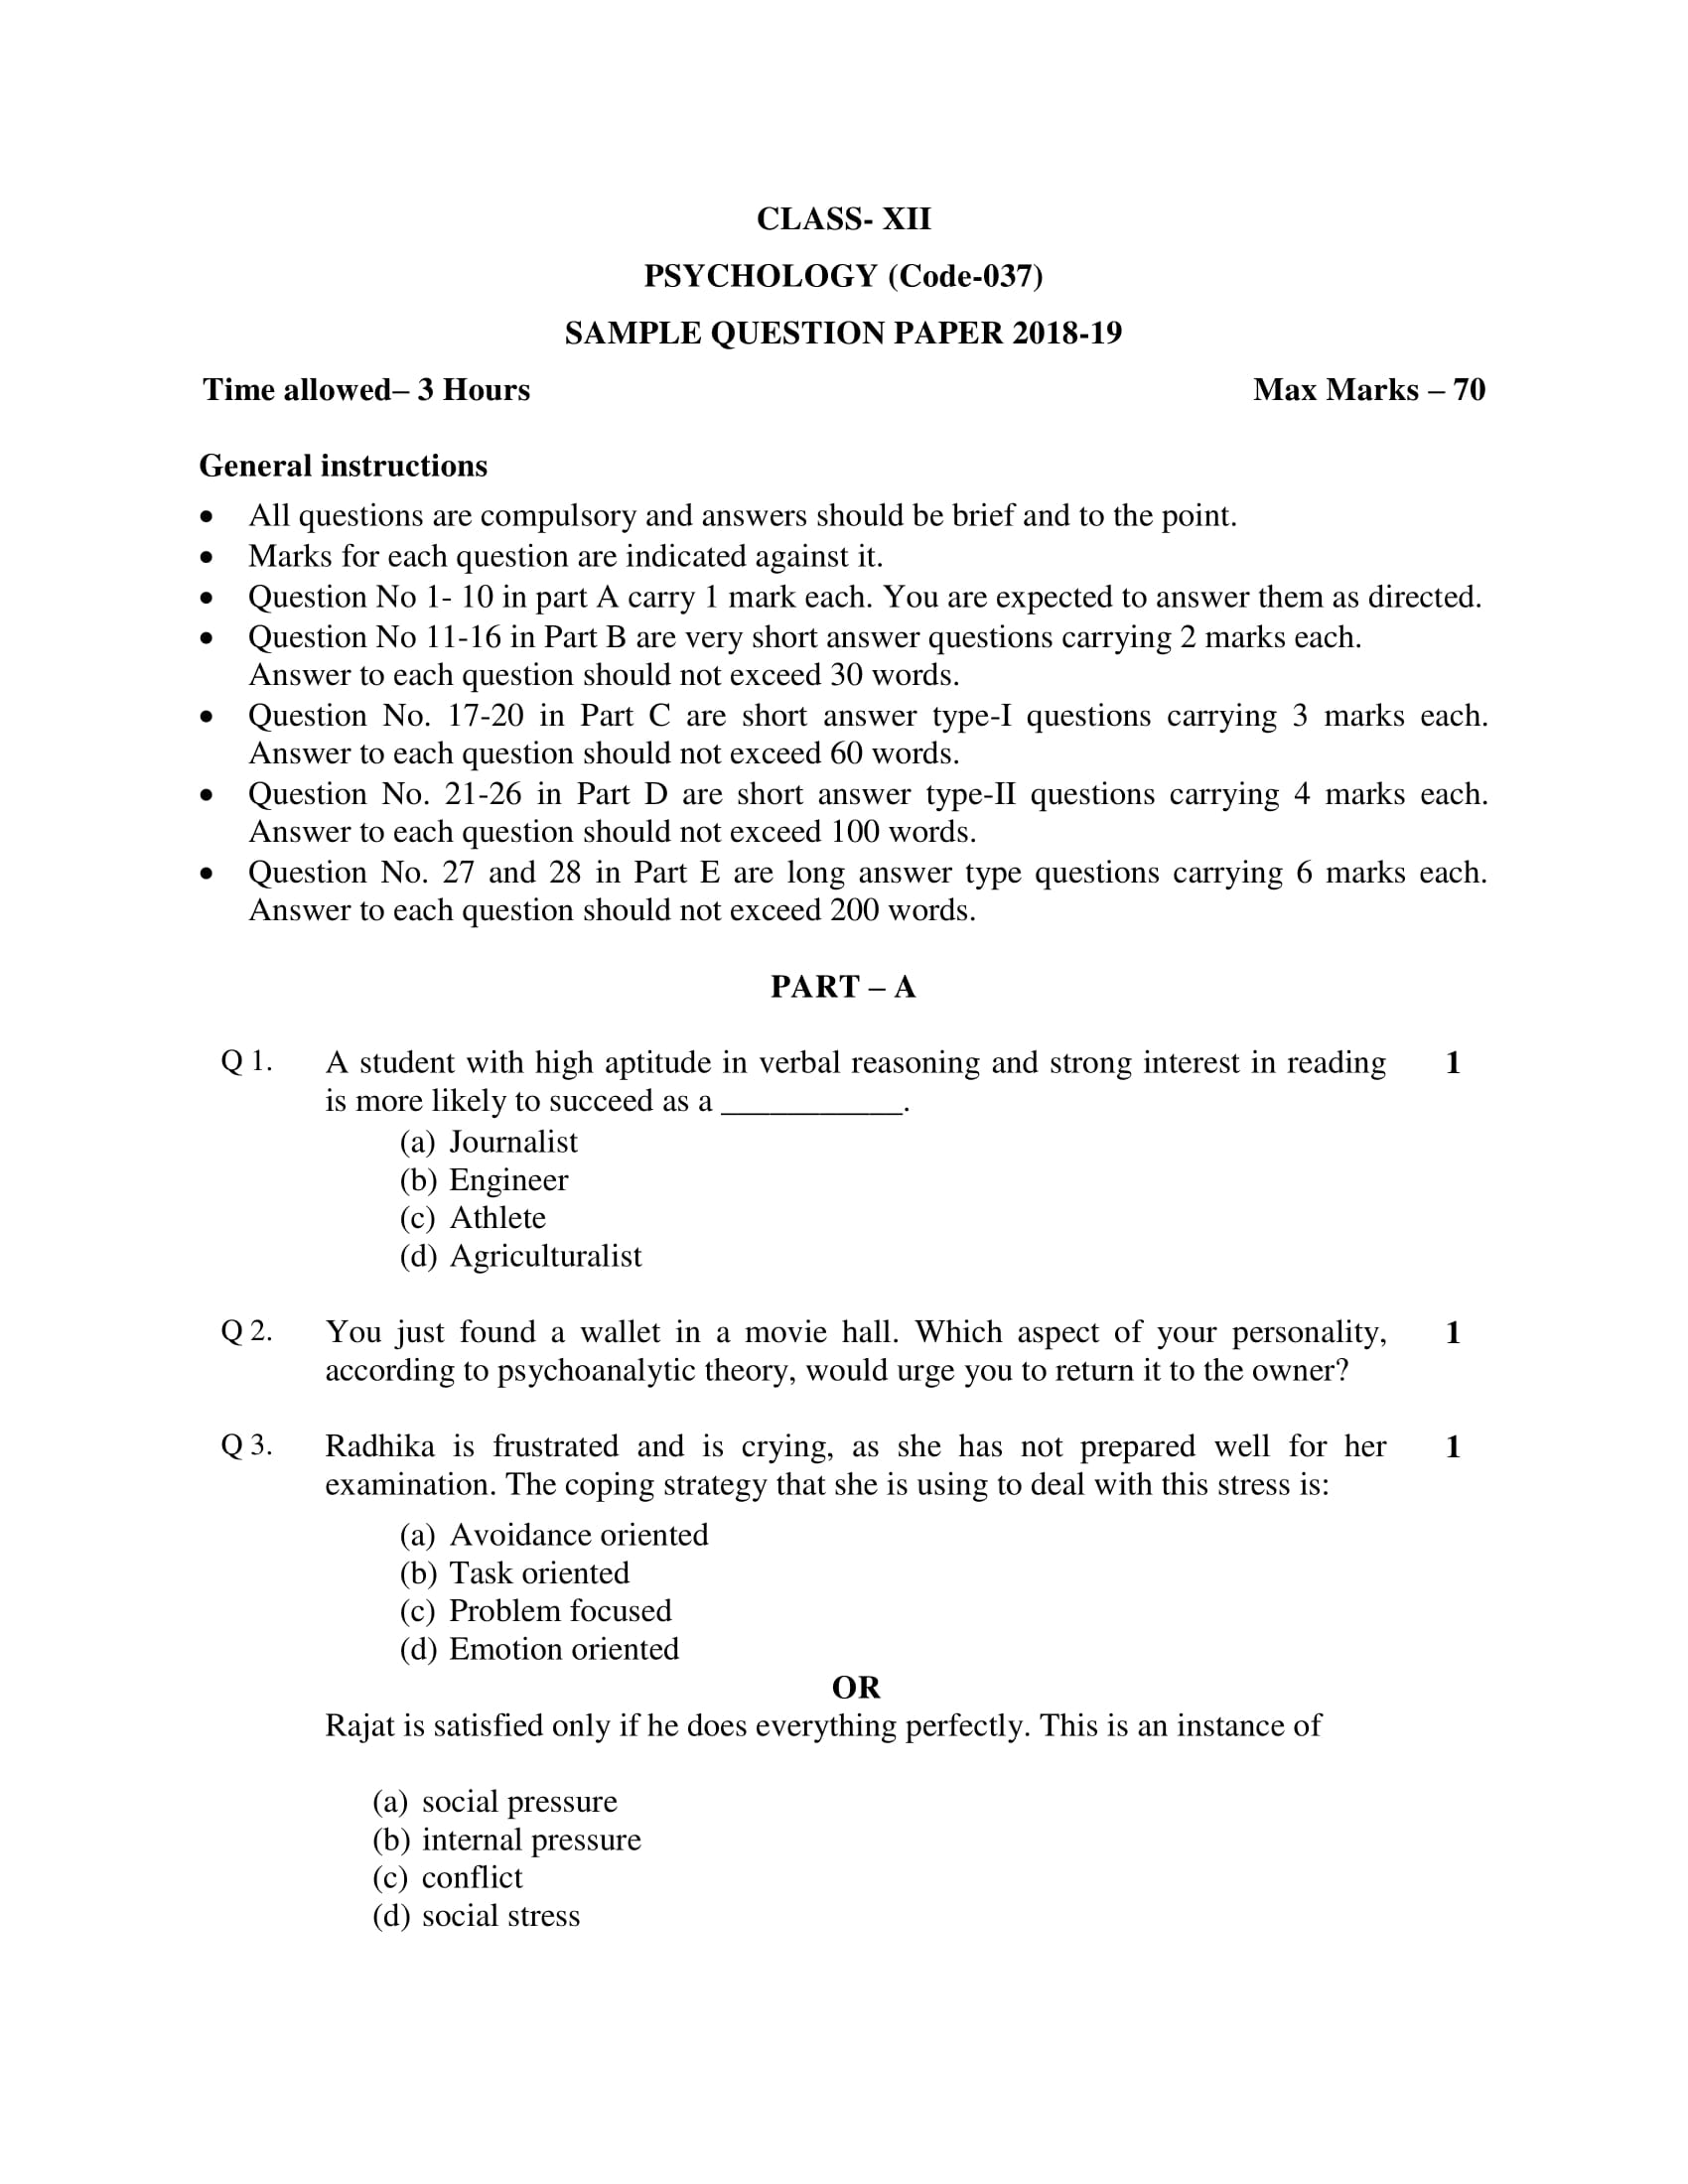 Psychology Class 12 Sample Question Paper PDF Download 2018-19